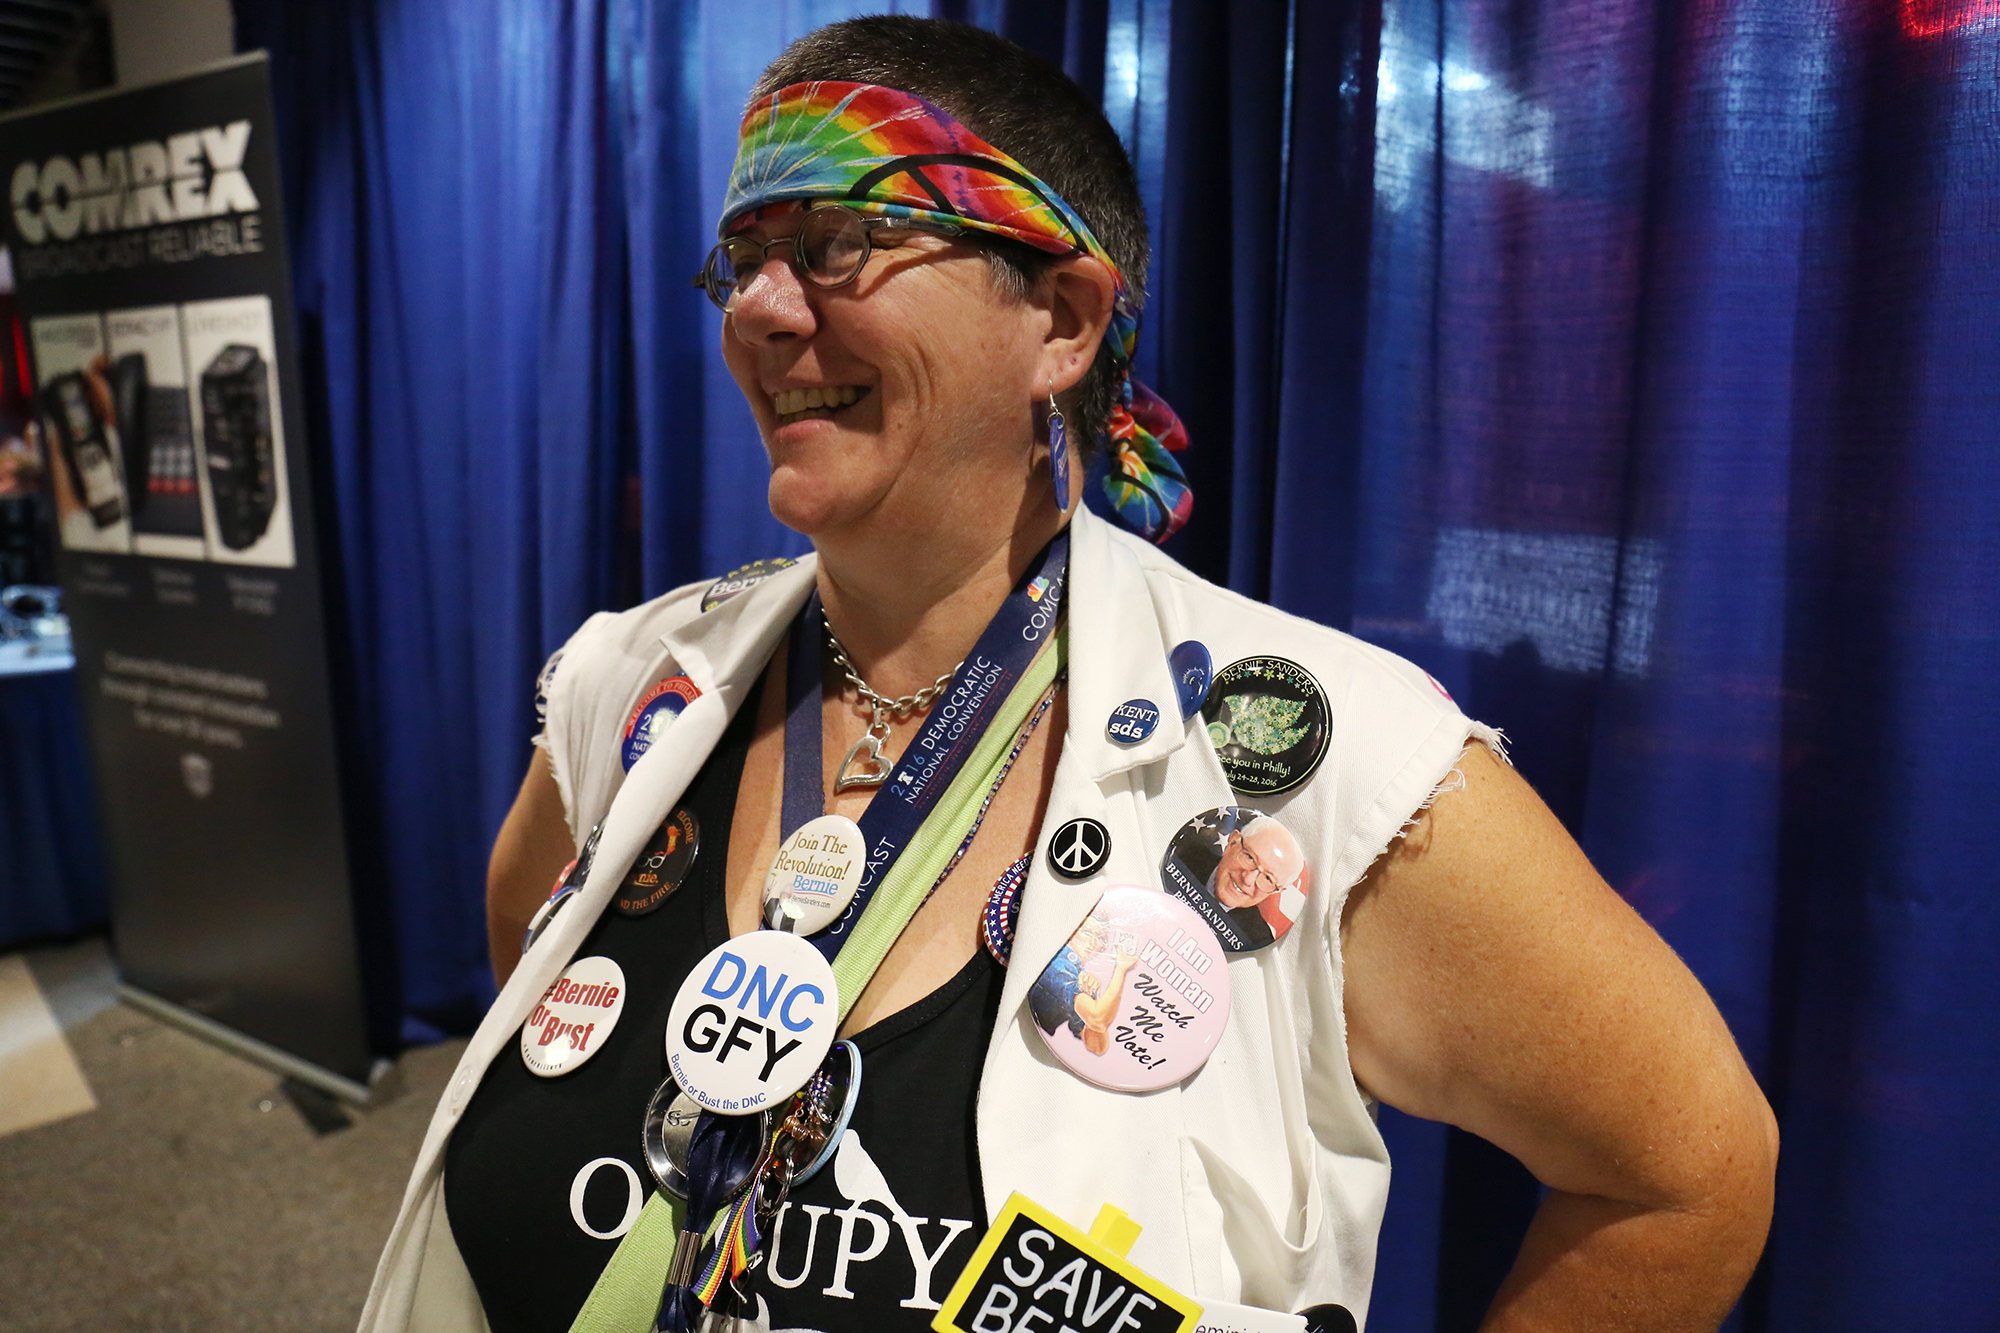 Victoria Bard, 50, is a Colorado delegate, a massage therapist and a Sanders supporter. Photo by Abbey Oldham